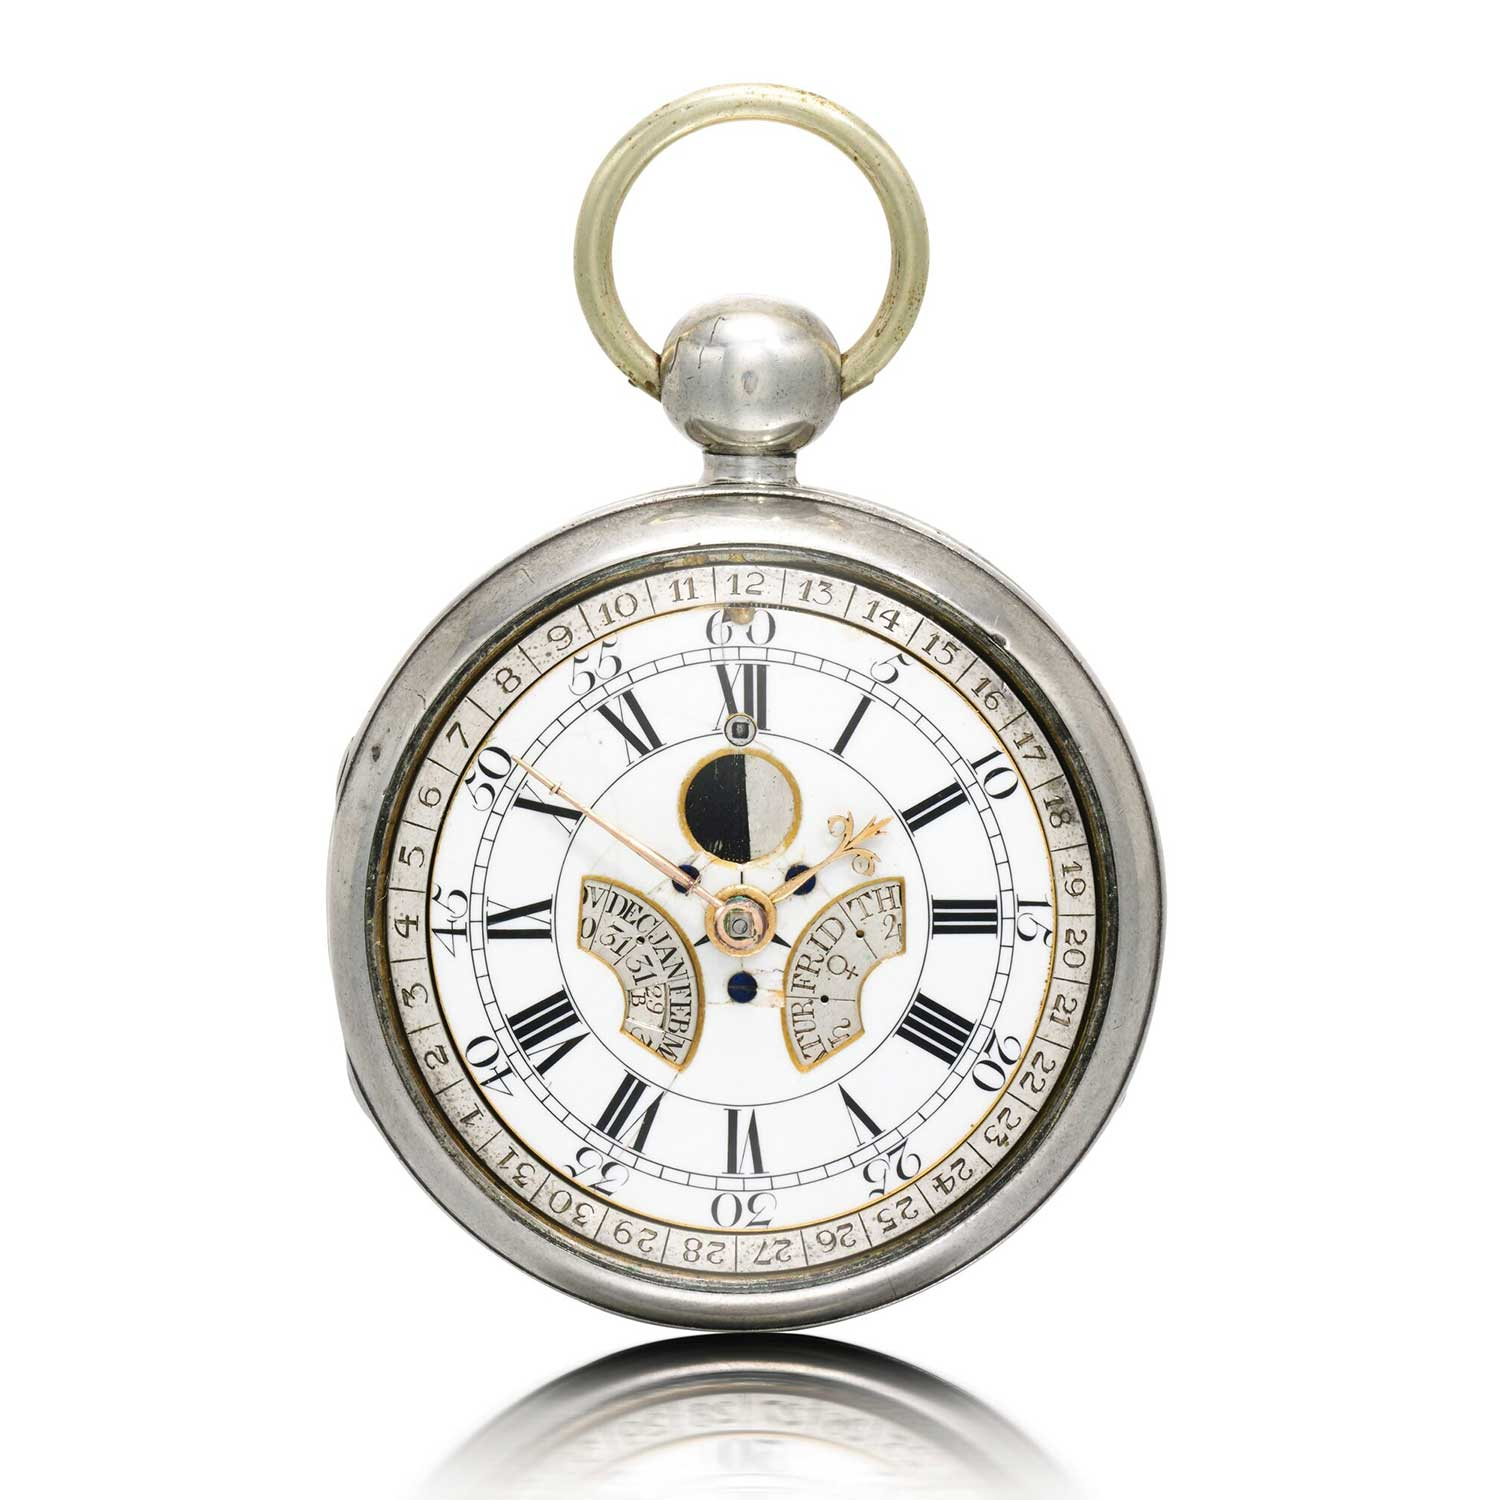 Thomas Mudge Perpetual Calendar pocket watch No. 525 that sold with Sotheby's in 2016 for £62,500; the timepiece considered to be possibly the earliest perpetual calendar exist; seen here in later silver case circa 1762 (Image: sothebys.com)